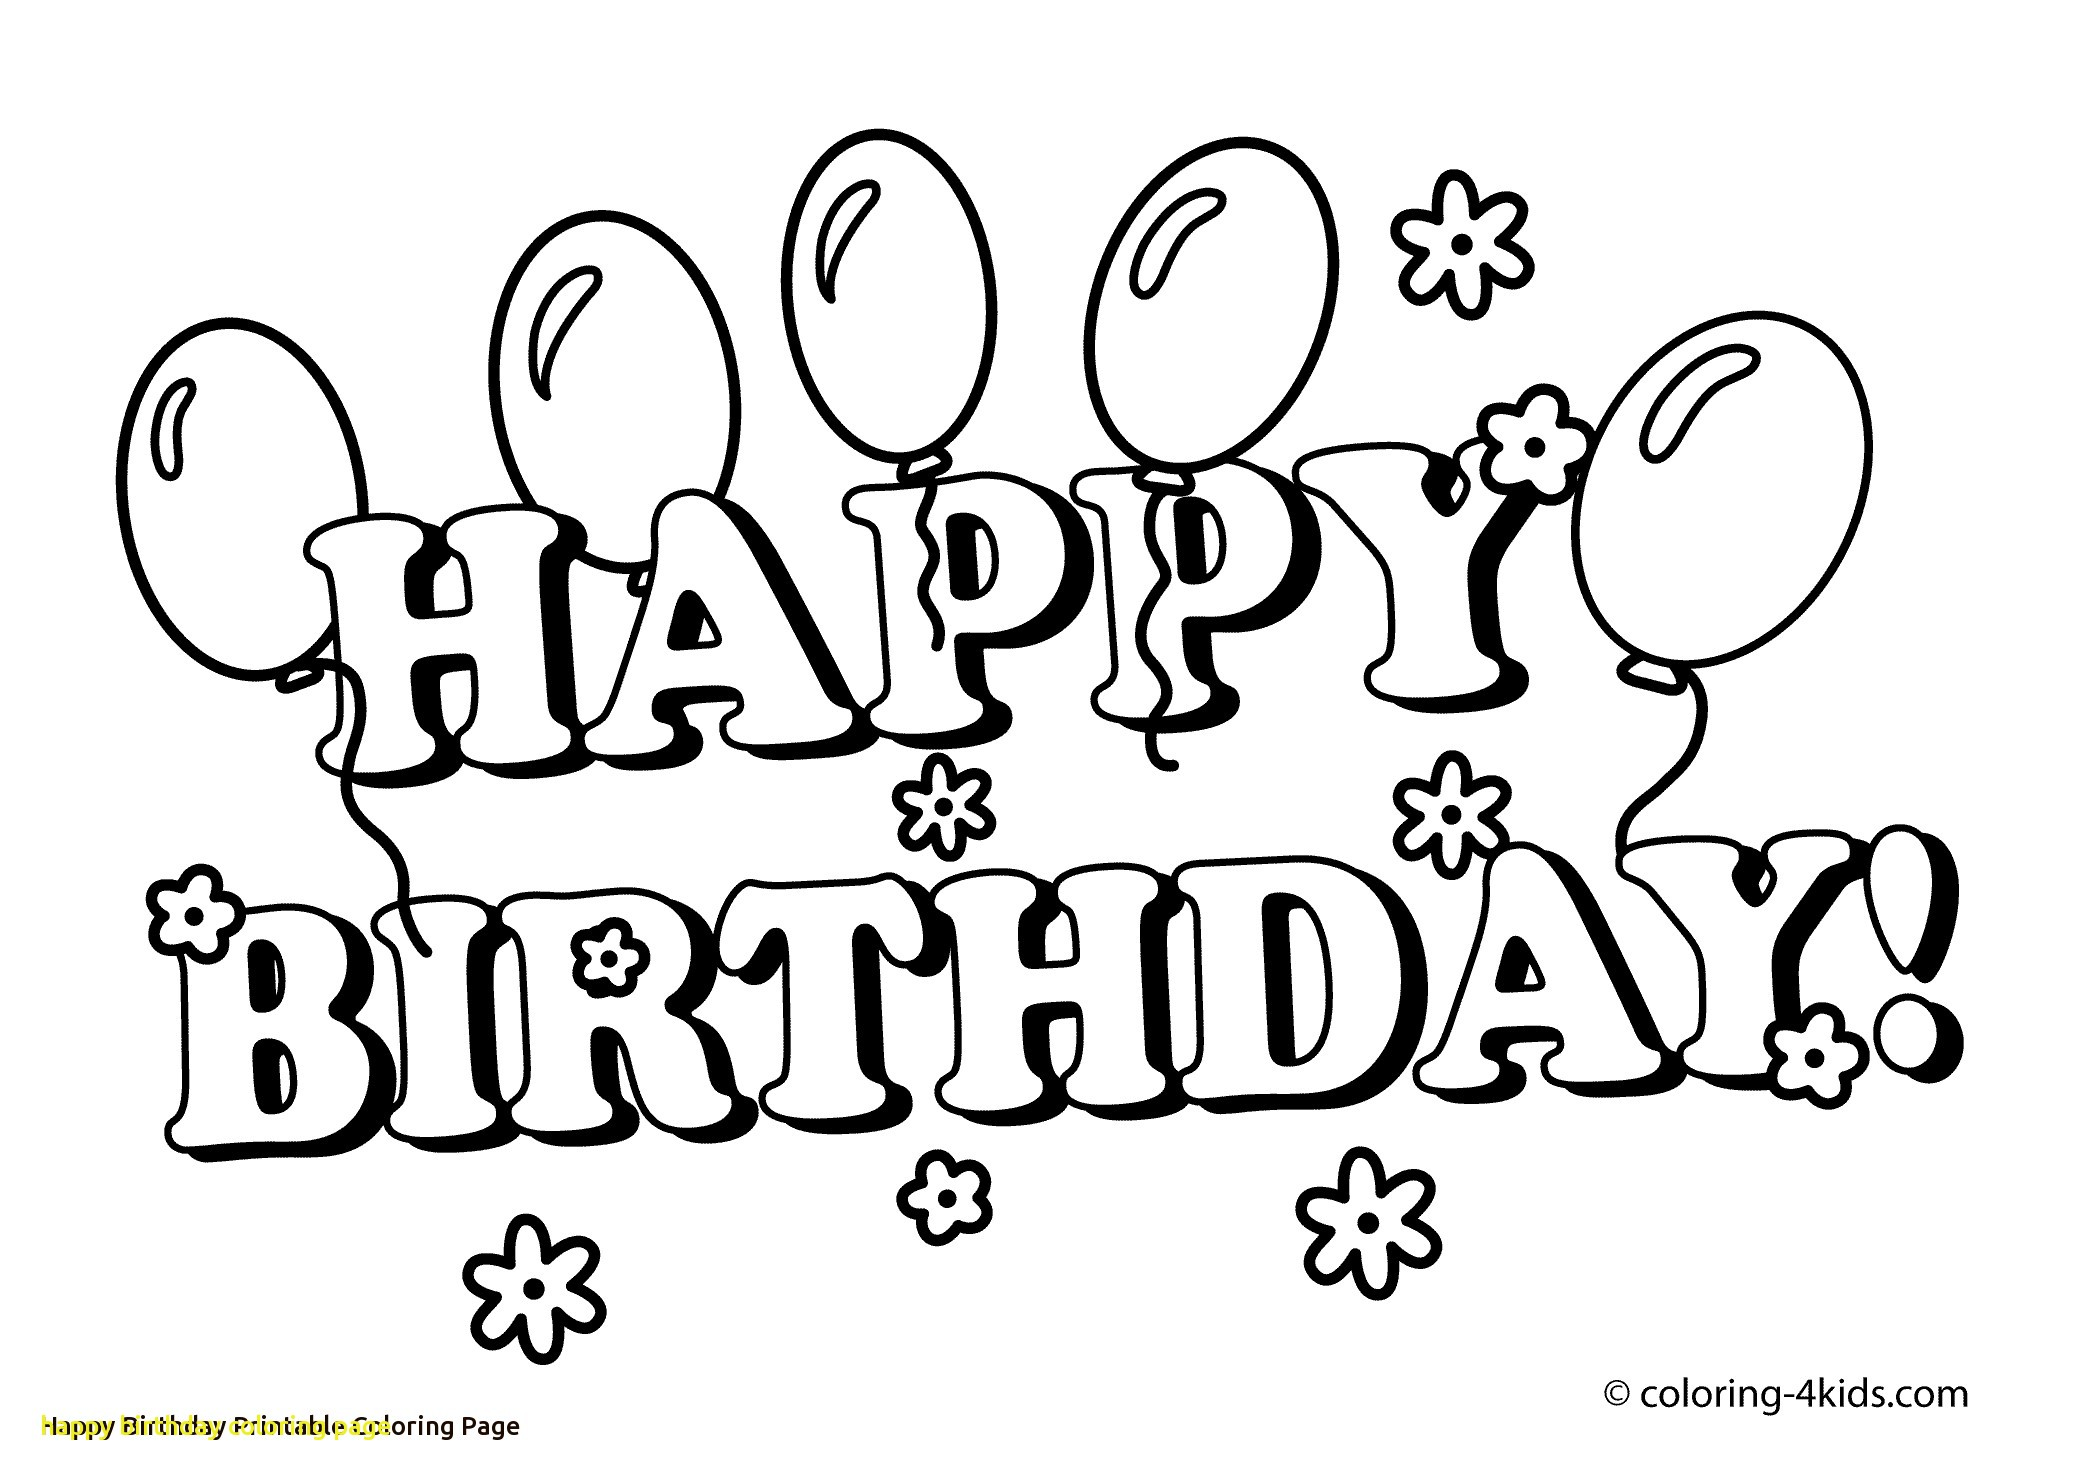 birthday party colouring sheets ; happy-birthday-coloring-page-with-happy-birthday-printables-coloring-pages-with-balloons-for-kids-of-happy-birthday-coloring-page